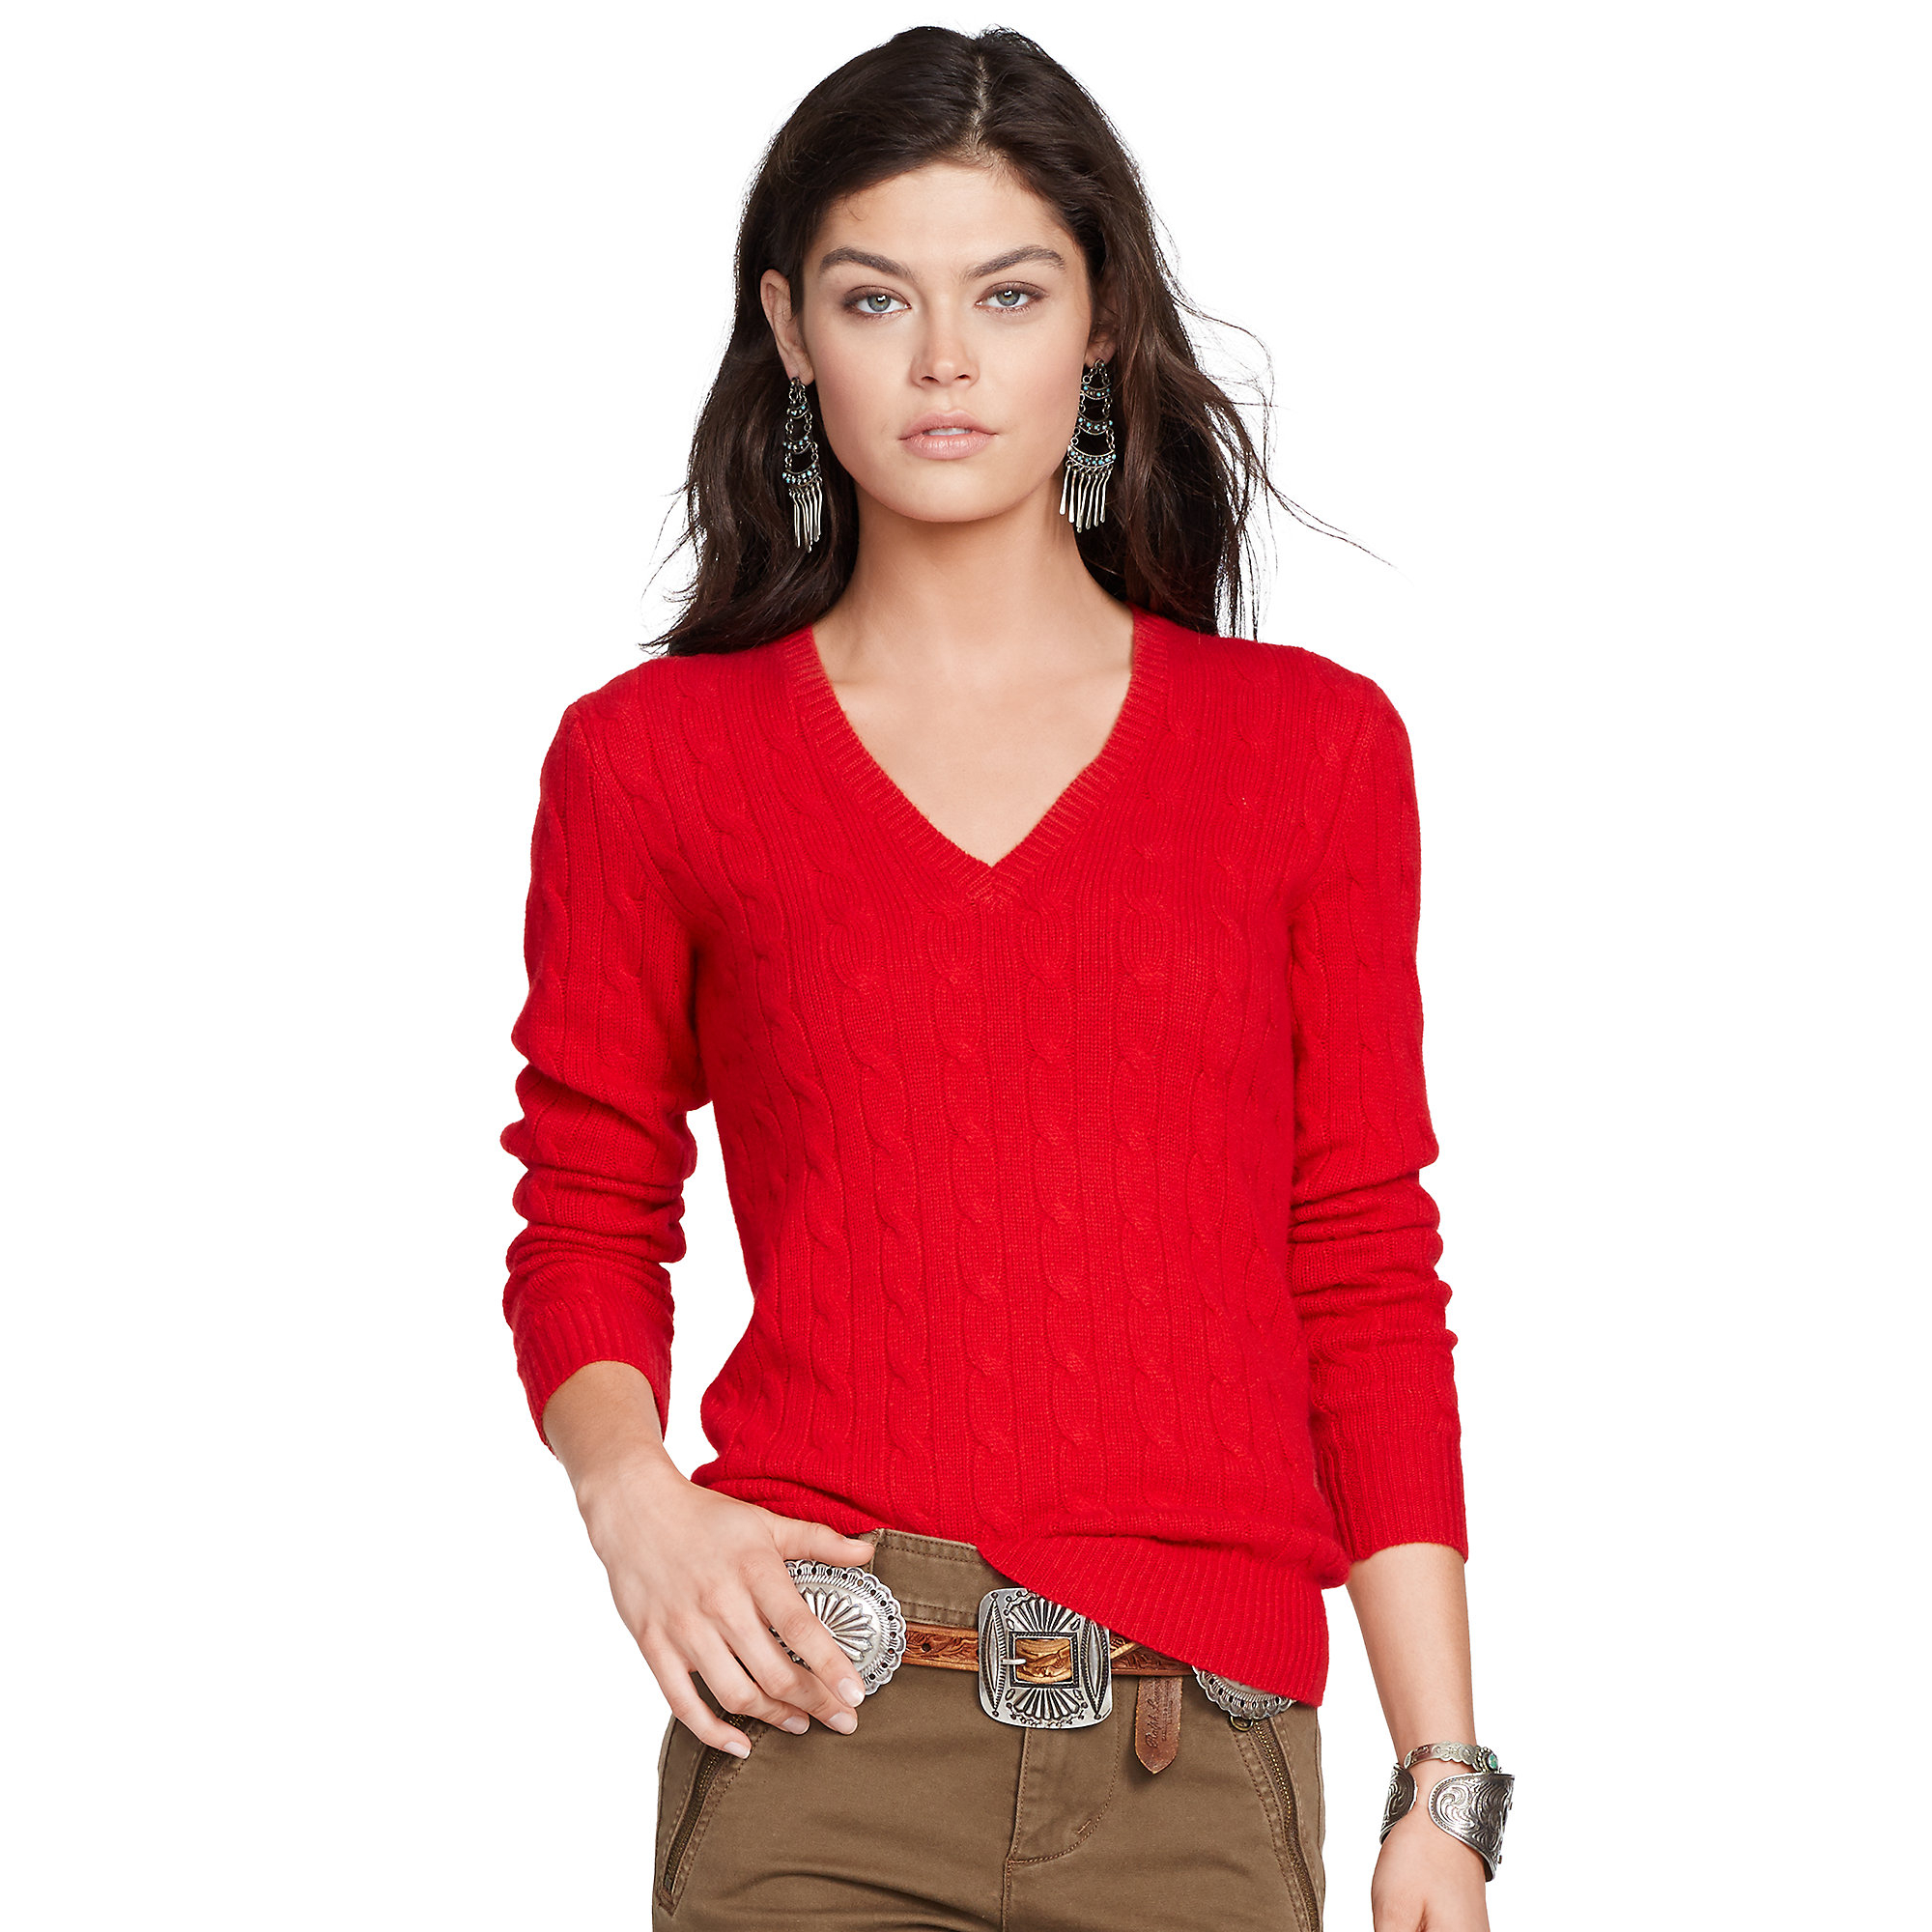 Polo ralph lauren Cabled Cashmere V-neck Sweater in Red